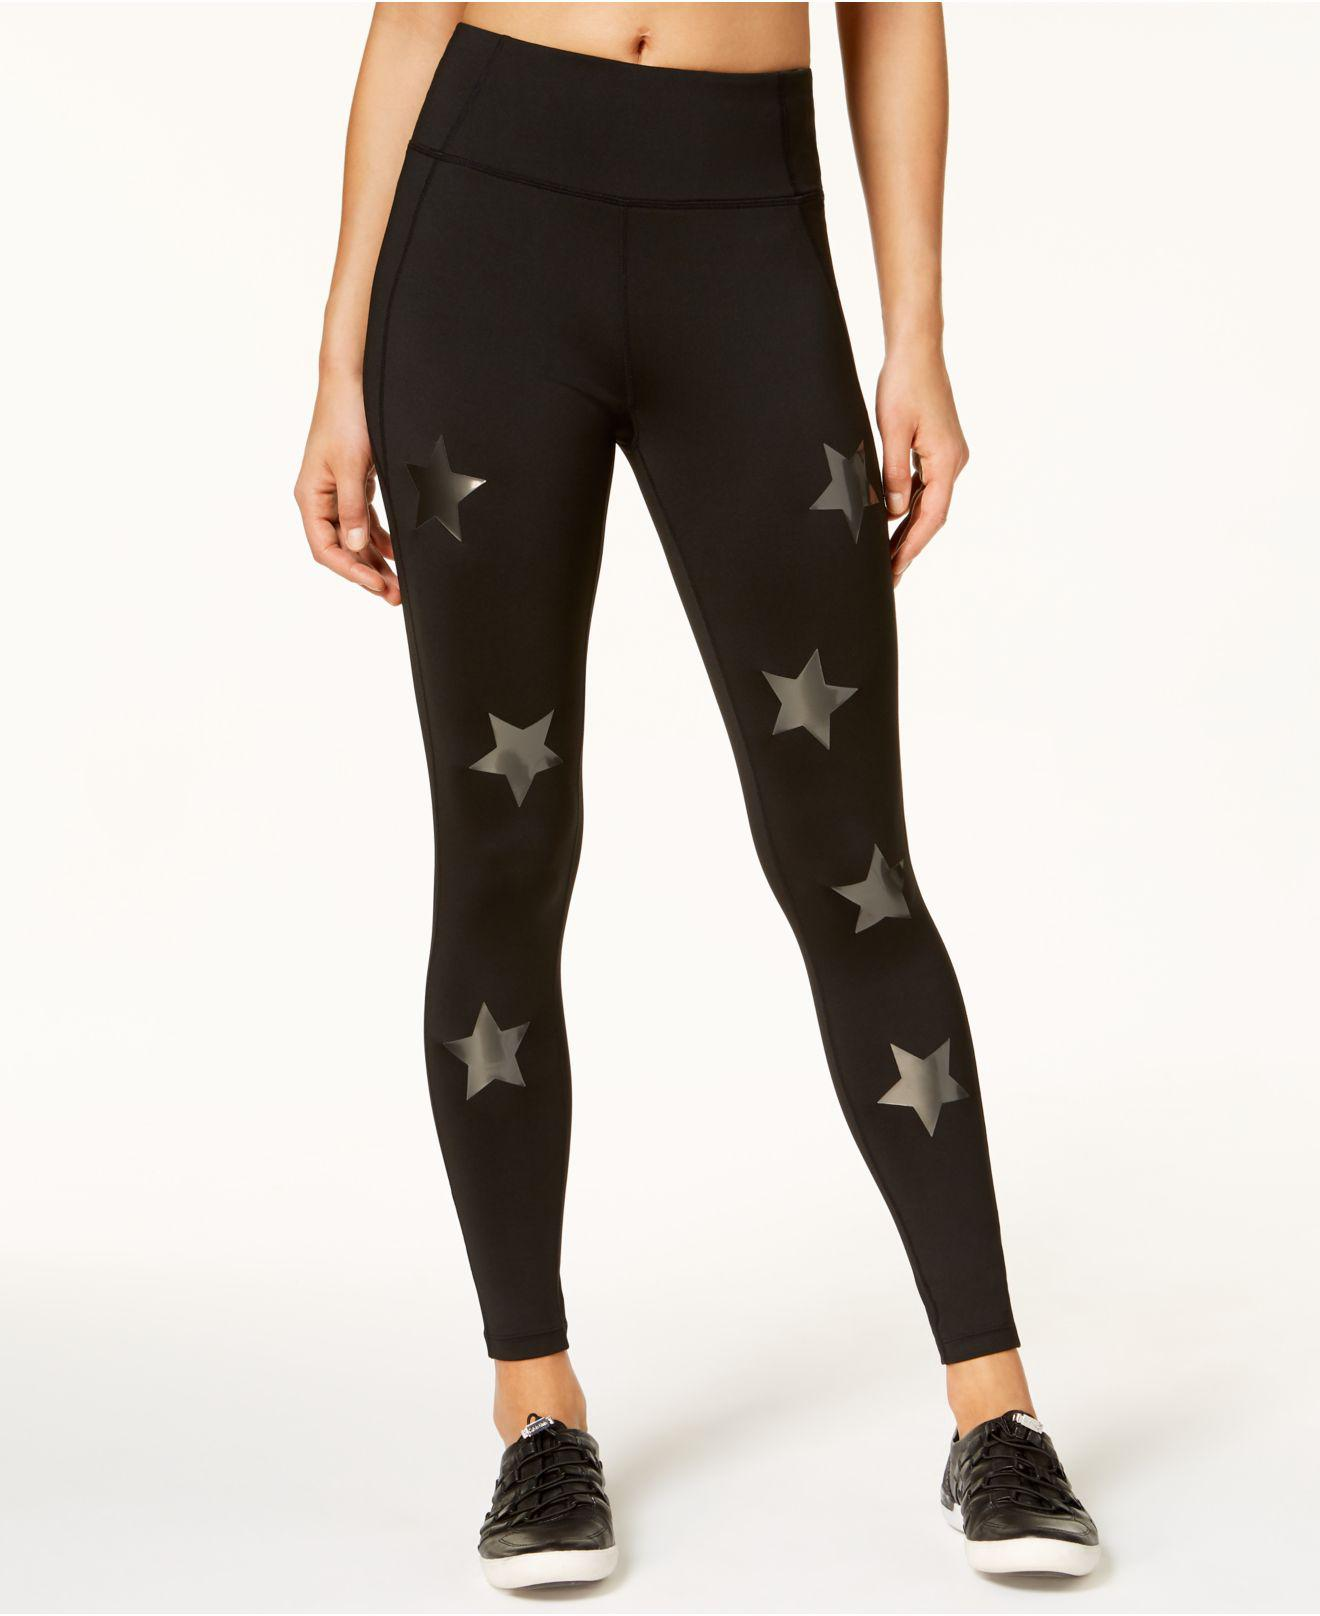 0c46ba2e284ee Lyst - Calvin Klein High-rise Star Leggings in Black